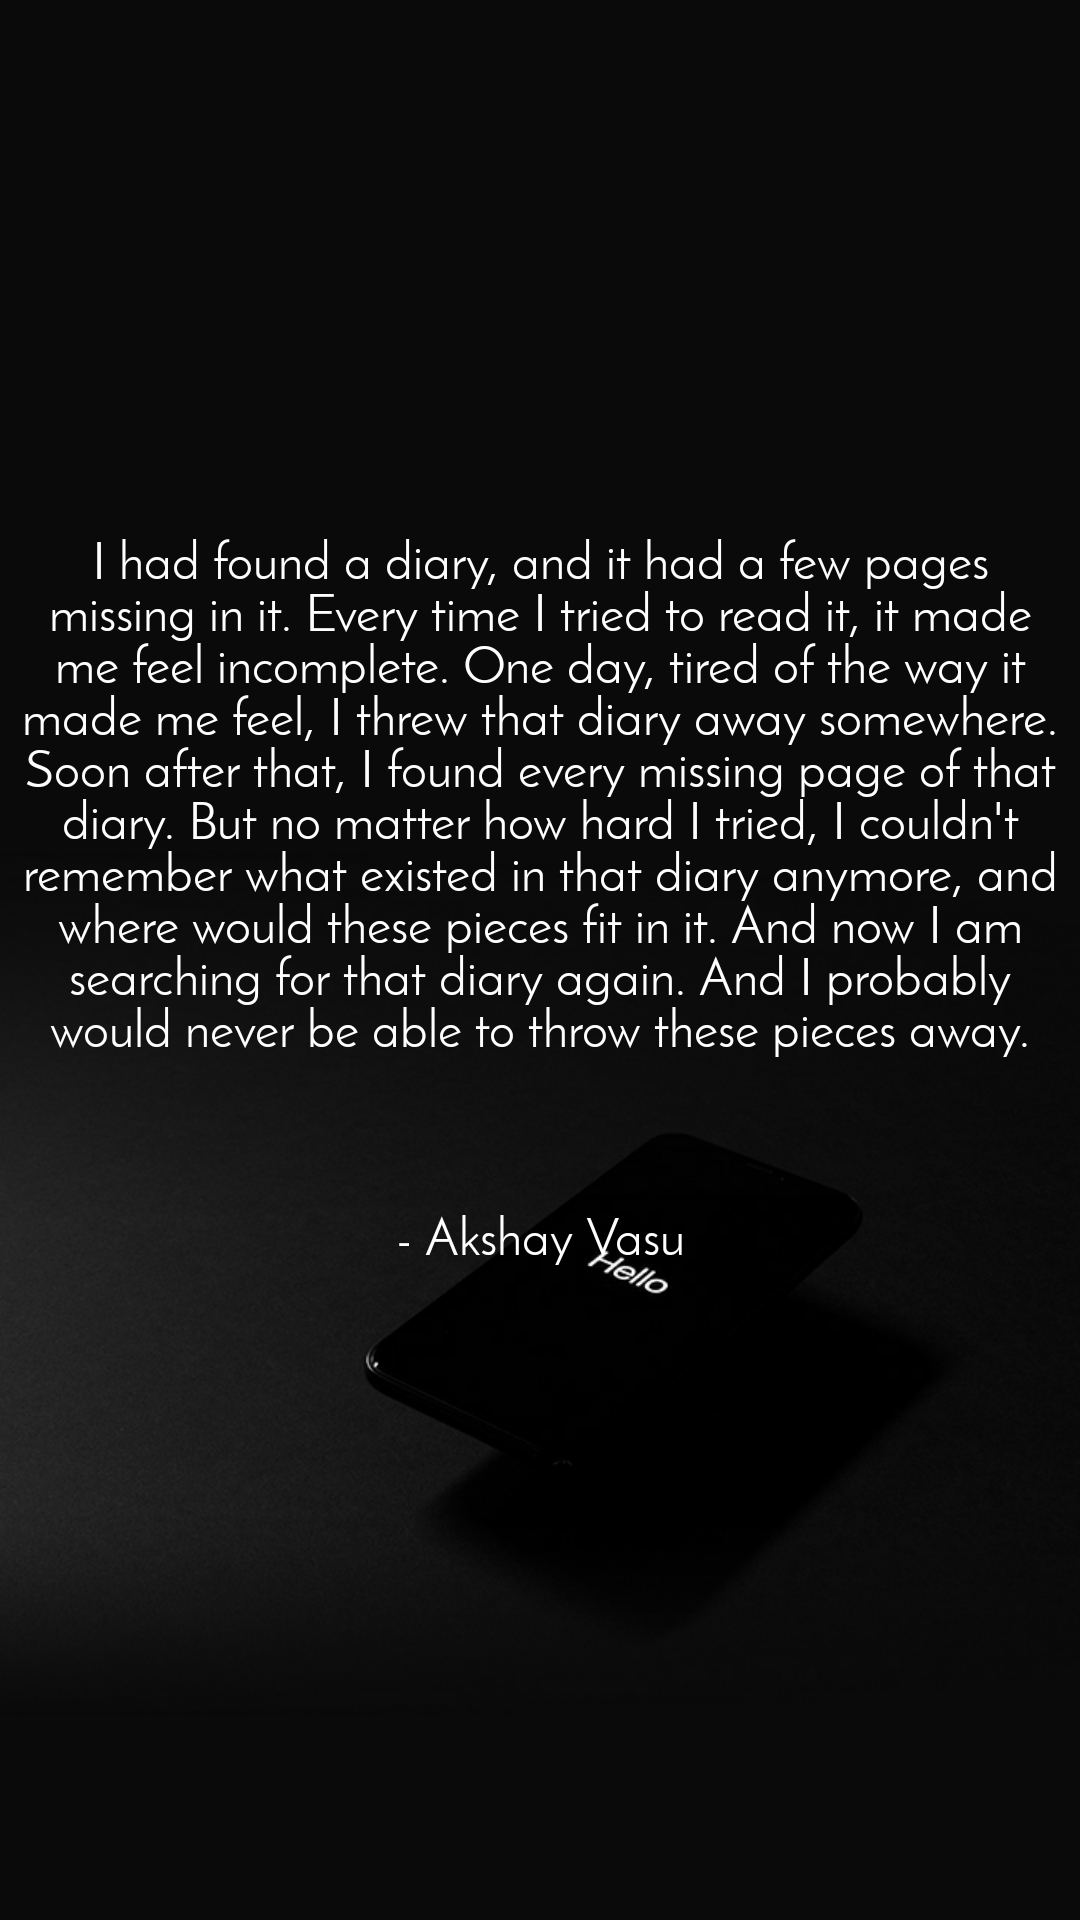 I had found a diary, and it had a few pages missing in it. Every time I tried to read it, it made me feel incomplete. One day, tired of the way it made me feel, I threw that diary away somewhere. Soon after that, I found every missing page of that diary. But no matter how hard I tried, I couldn't remember what existed in that diary anymore, and where would these pieces fit in it. And now I am searching for that diary again. And I probably would never be able to throw these pieces away.    - Akshay Vasu